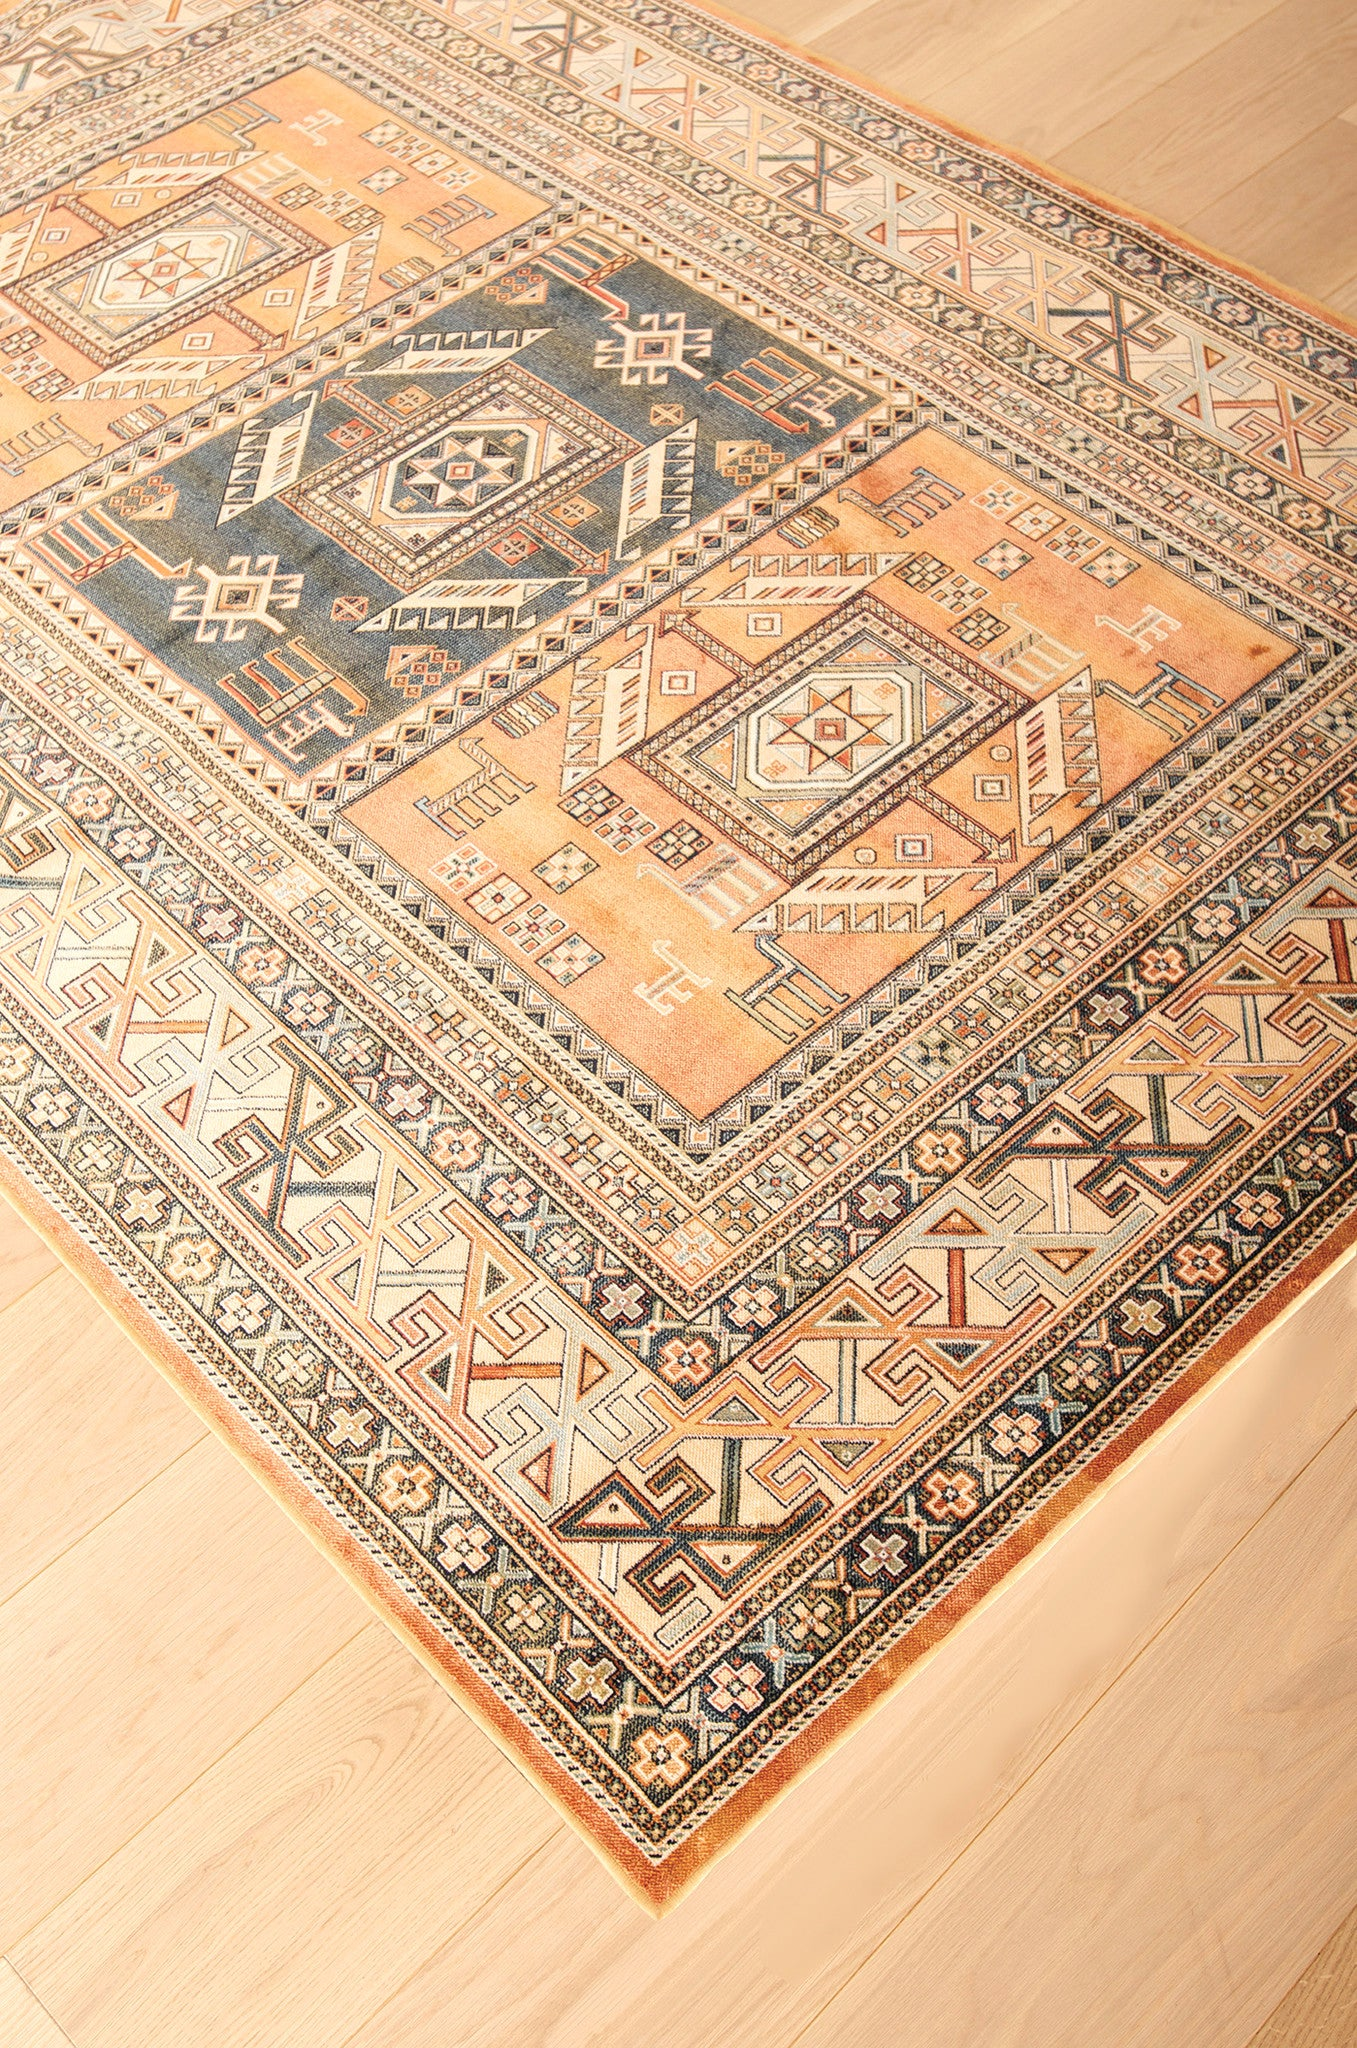 Southwest Santa Fe New Mexico Copper Colored Rug - Woodwaves